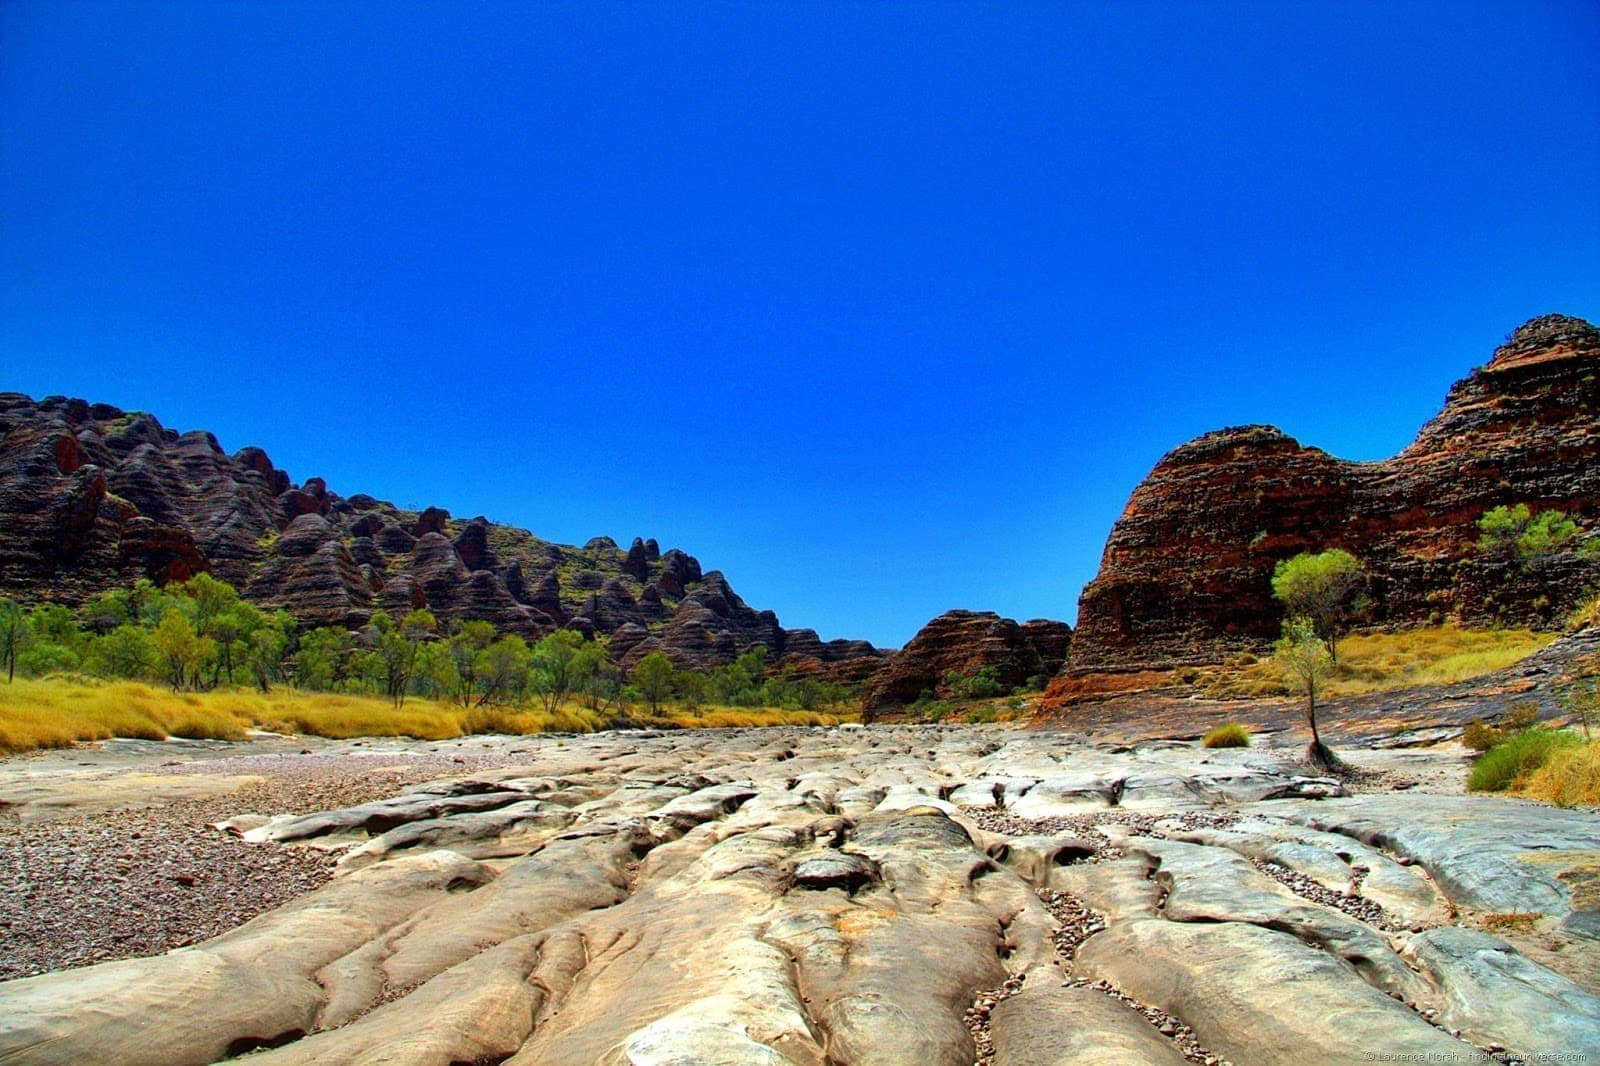 Purnululu bungle bungle rock formation dry river bed 3